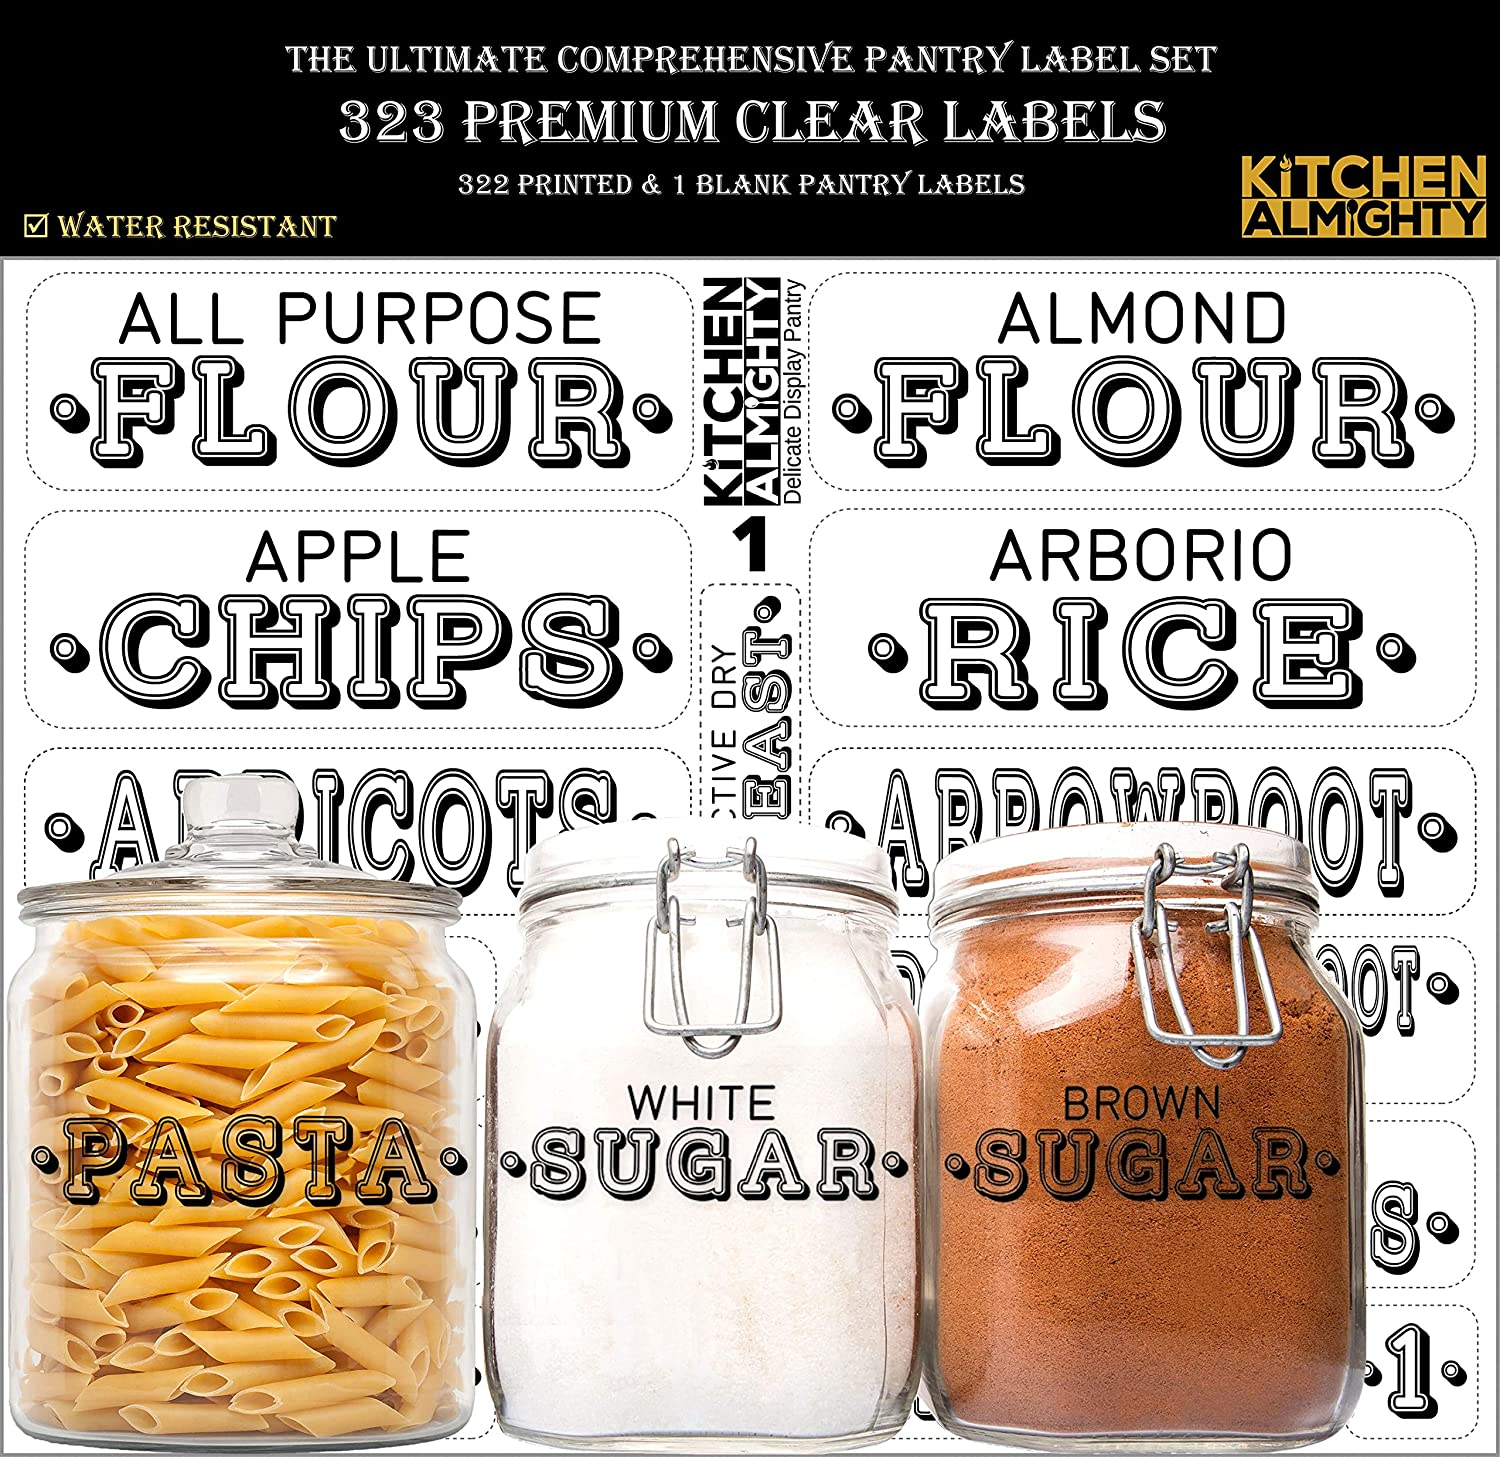 KITCHEN ALMIGHTY Pantry Labels: 323 Delicate Display Gloss Clear Preprinted Water Resistant Complete Label Set to Organize Storage Containers, Jars & Canisters w/a Extra Write-on Sticker